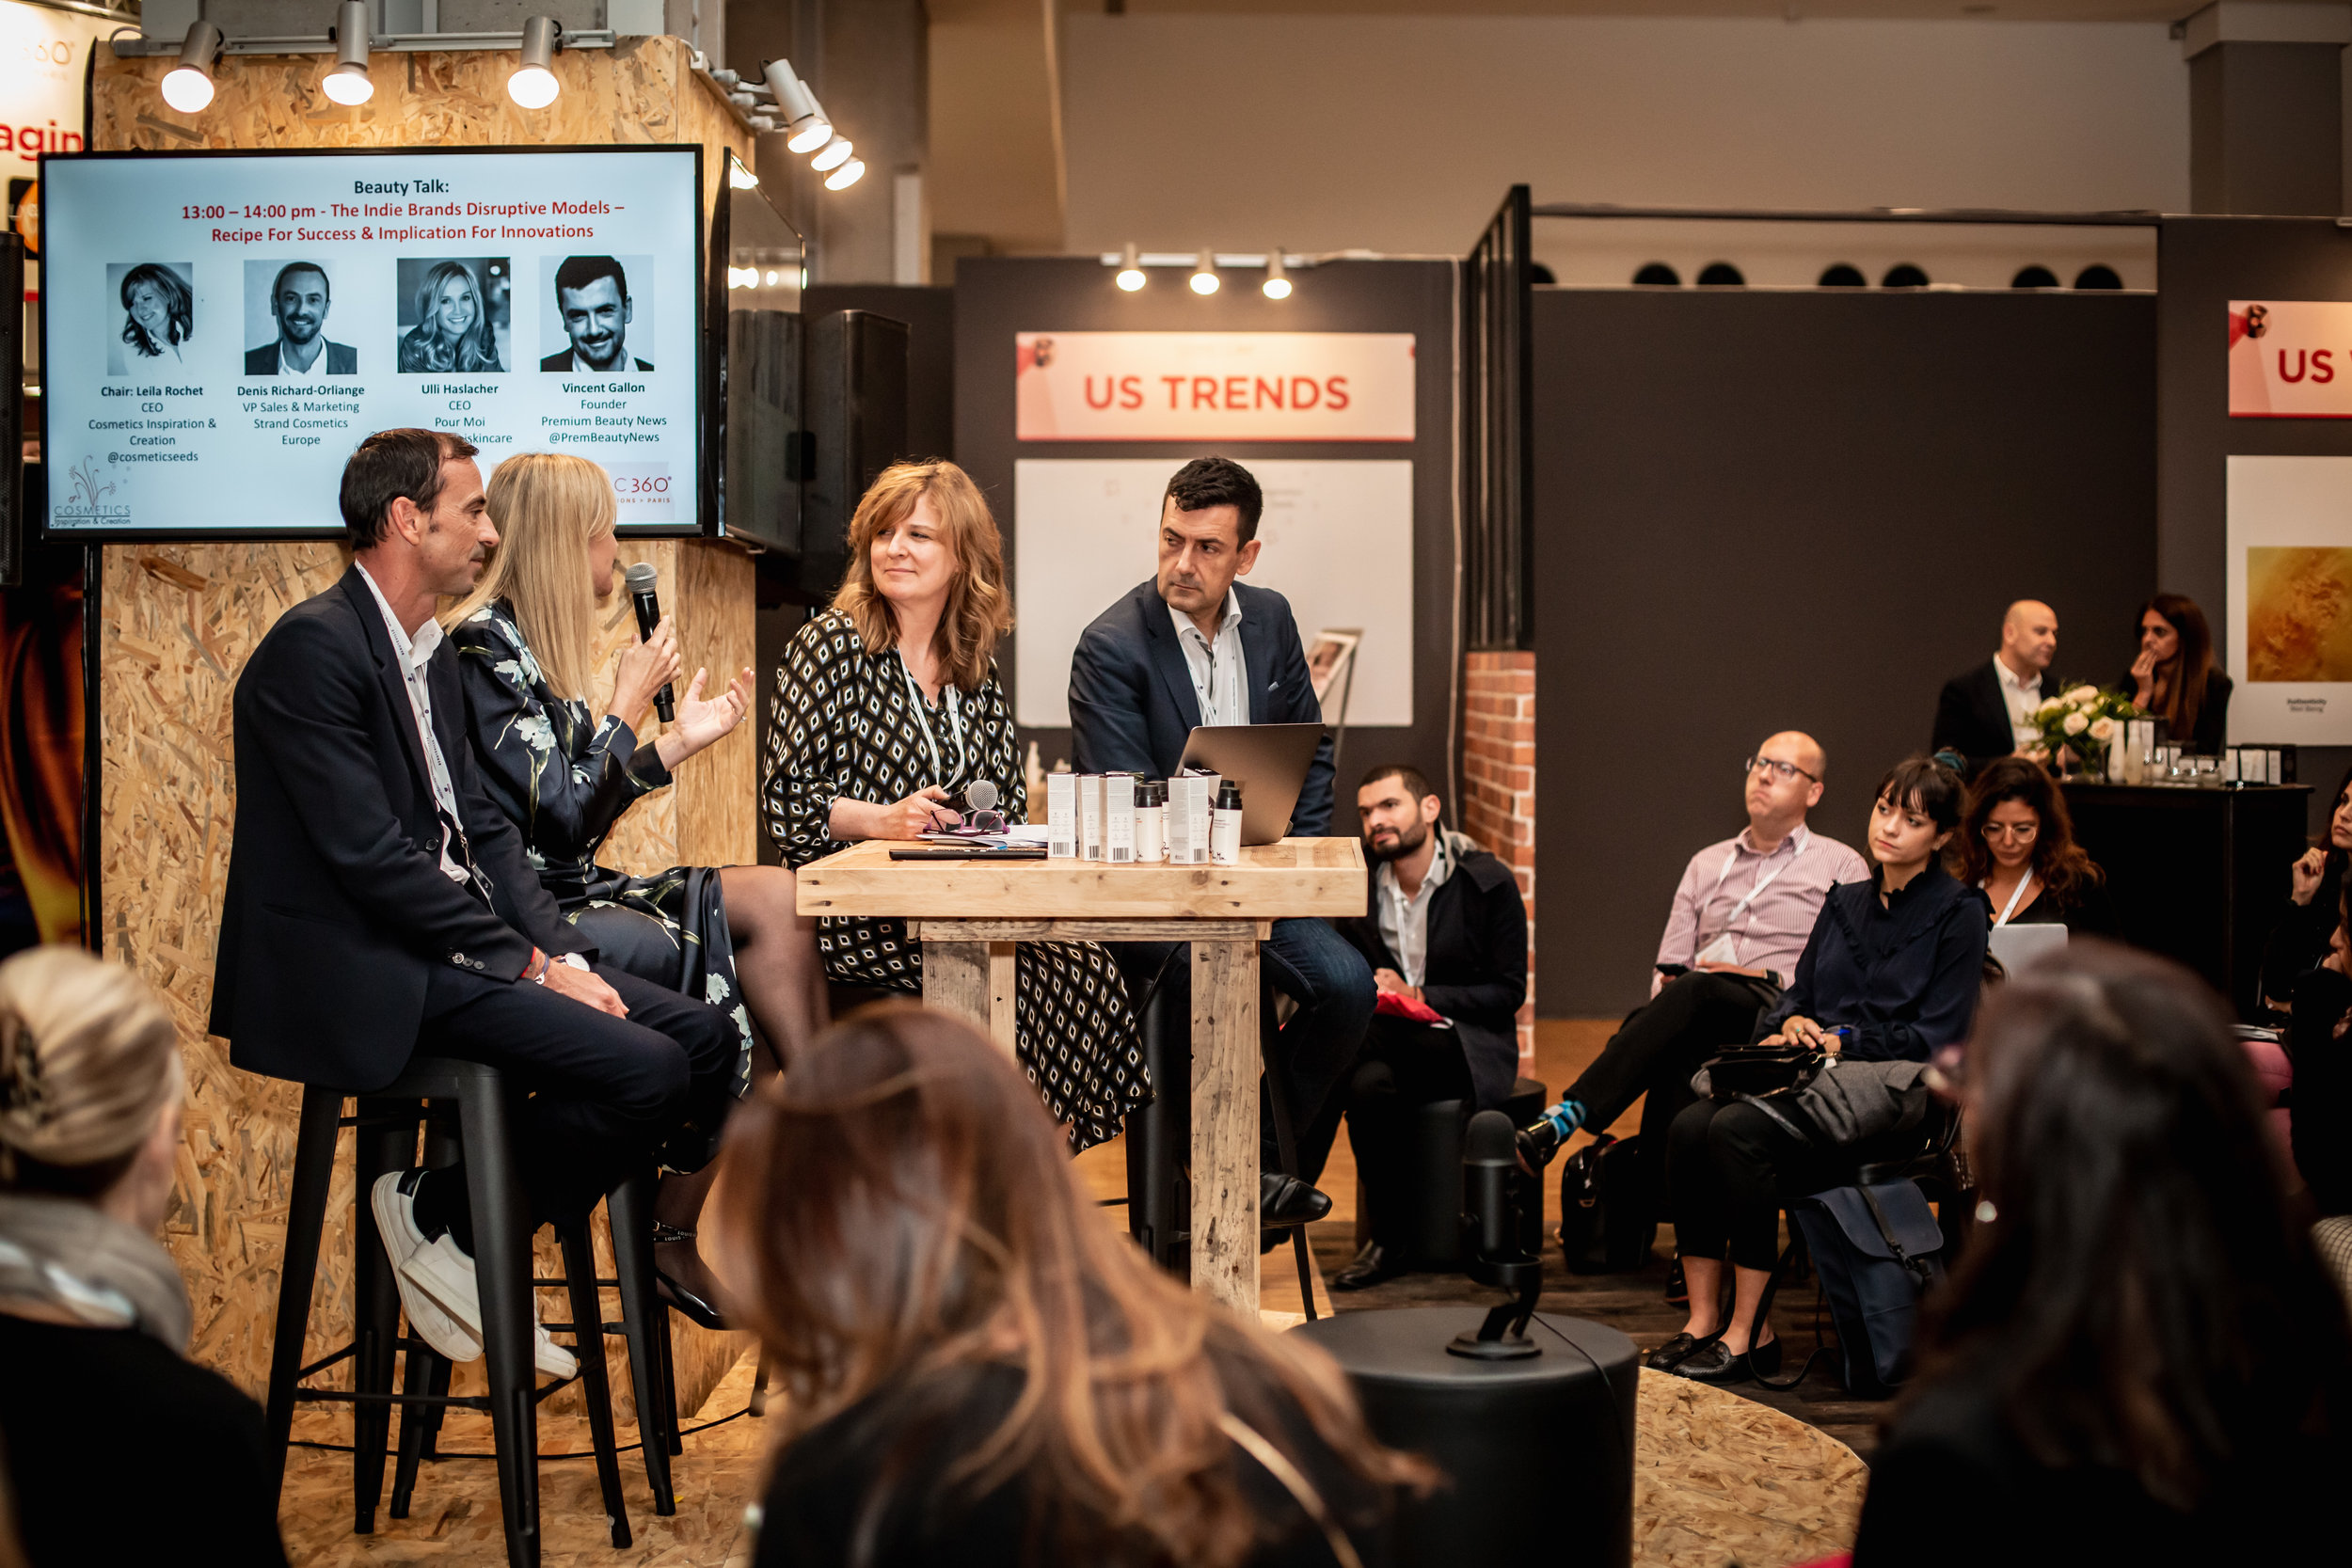 Photo- Cecile Muzard /Cosmetic360 - Round Table on Indie Brands with Denis Richard-Orliange - Strand Cosmetics Europe /Ulli Hashlacher (CEO & Pour Moi – Indie brand)/ Leila Rochet / Vincent Gallon – CEO Premium Beauty News